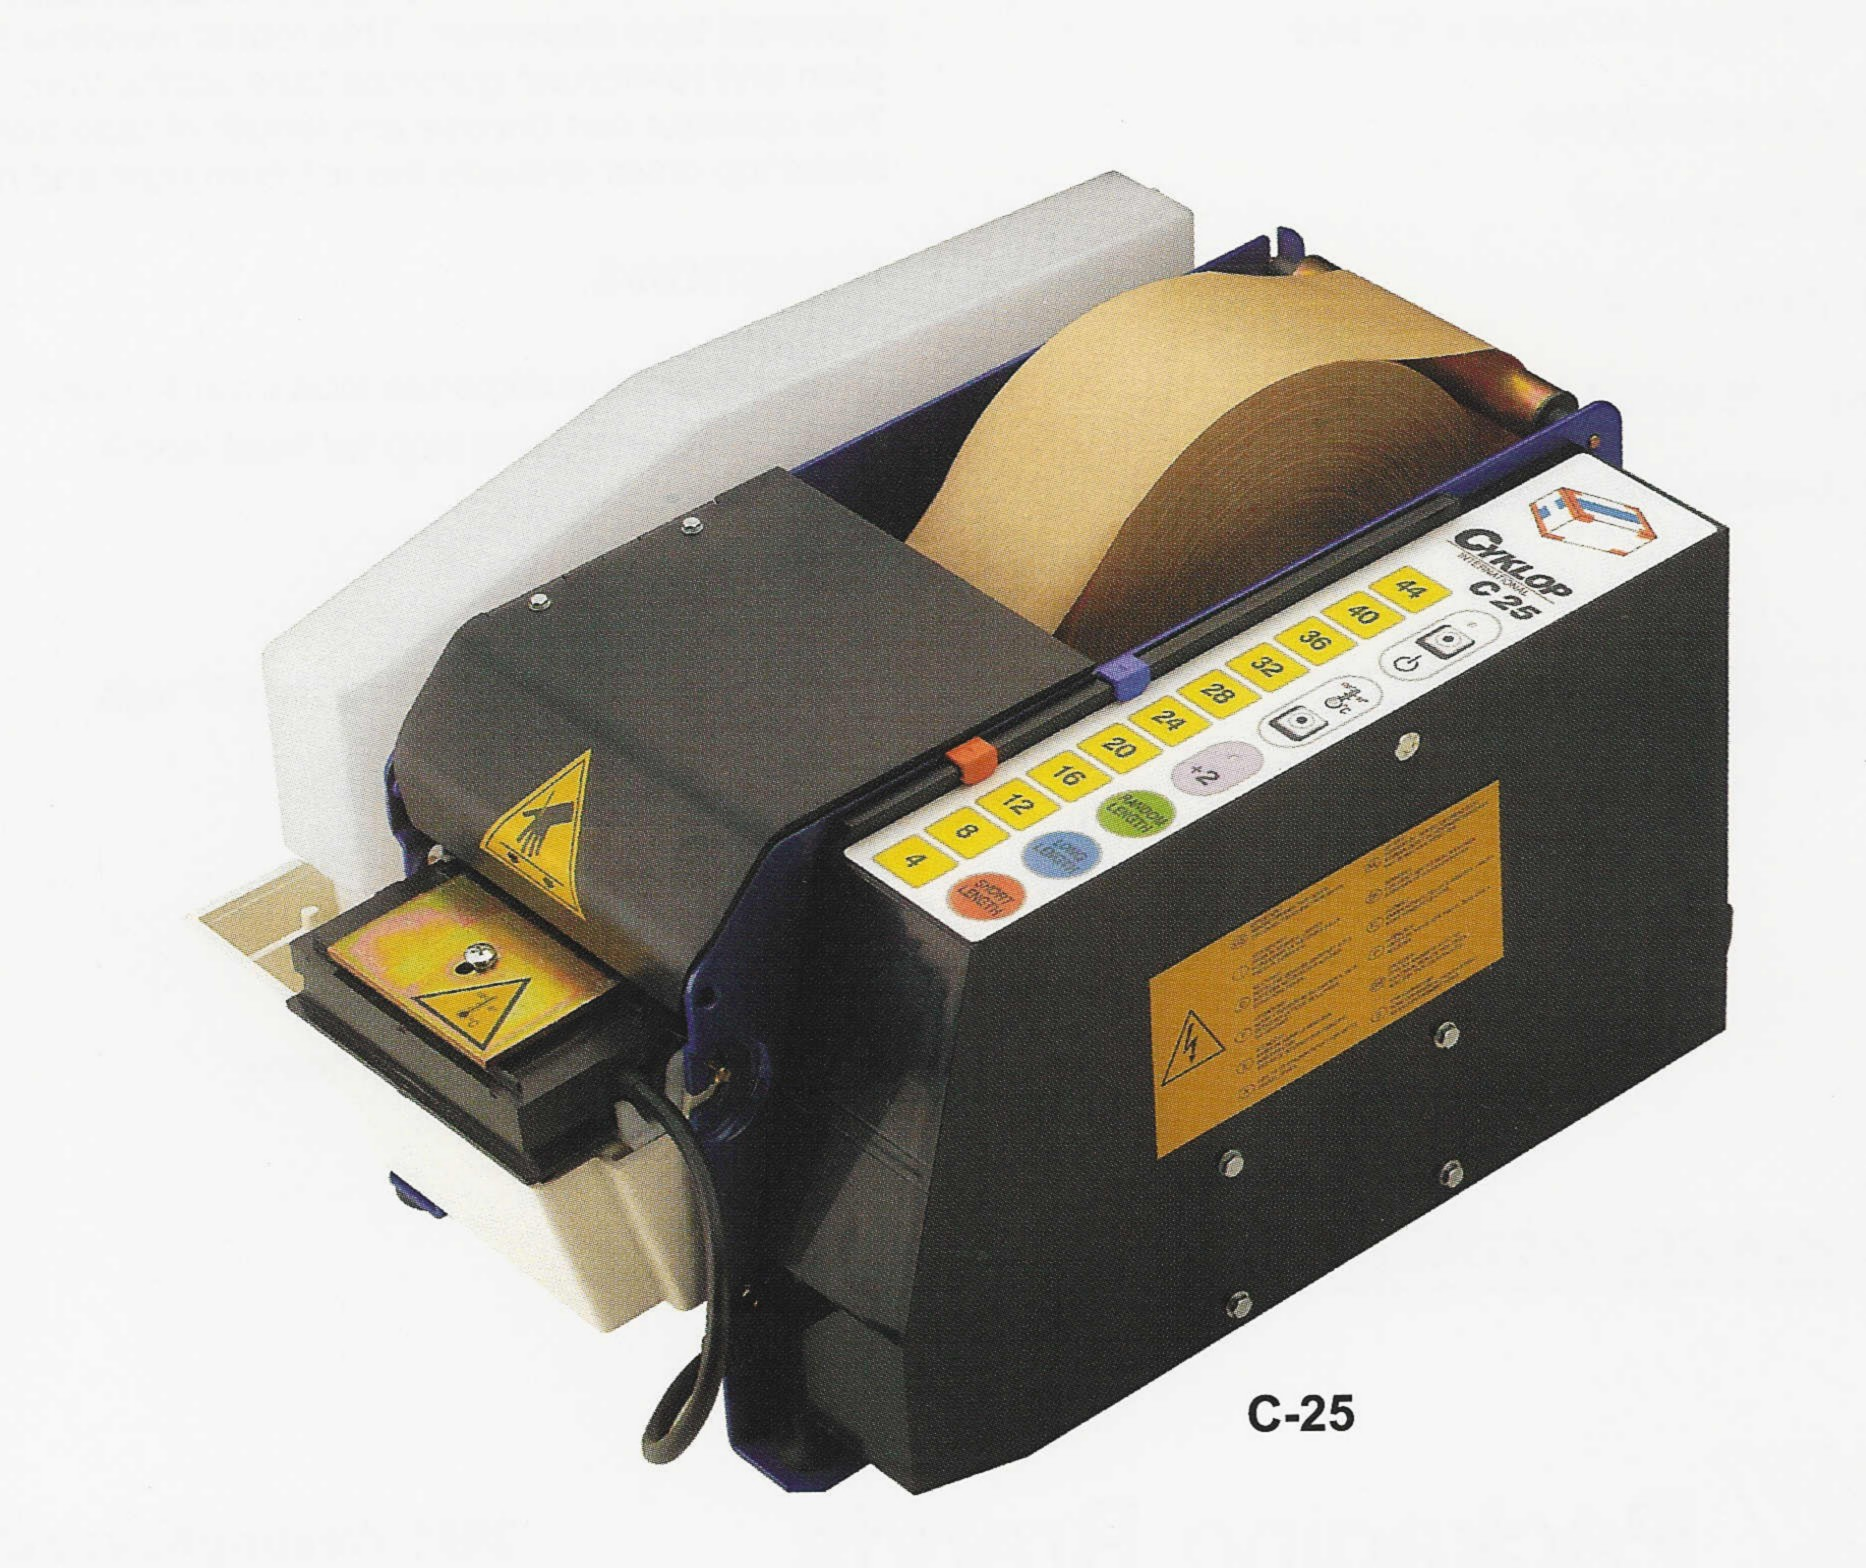 C-25 Electronic Tape Dispenser